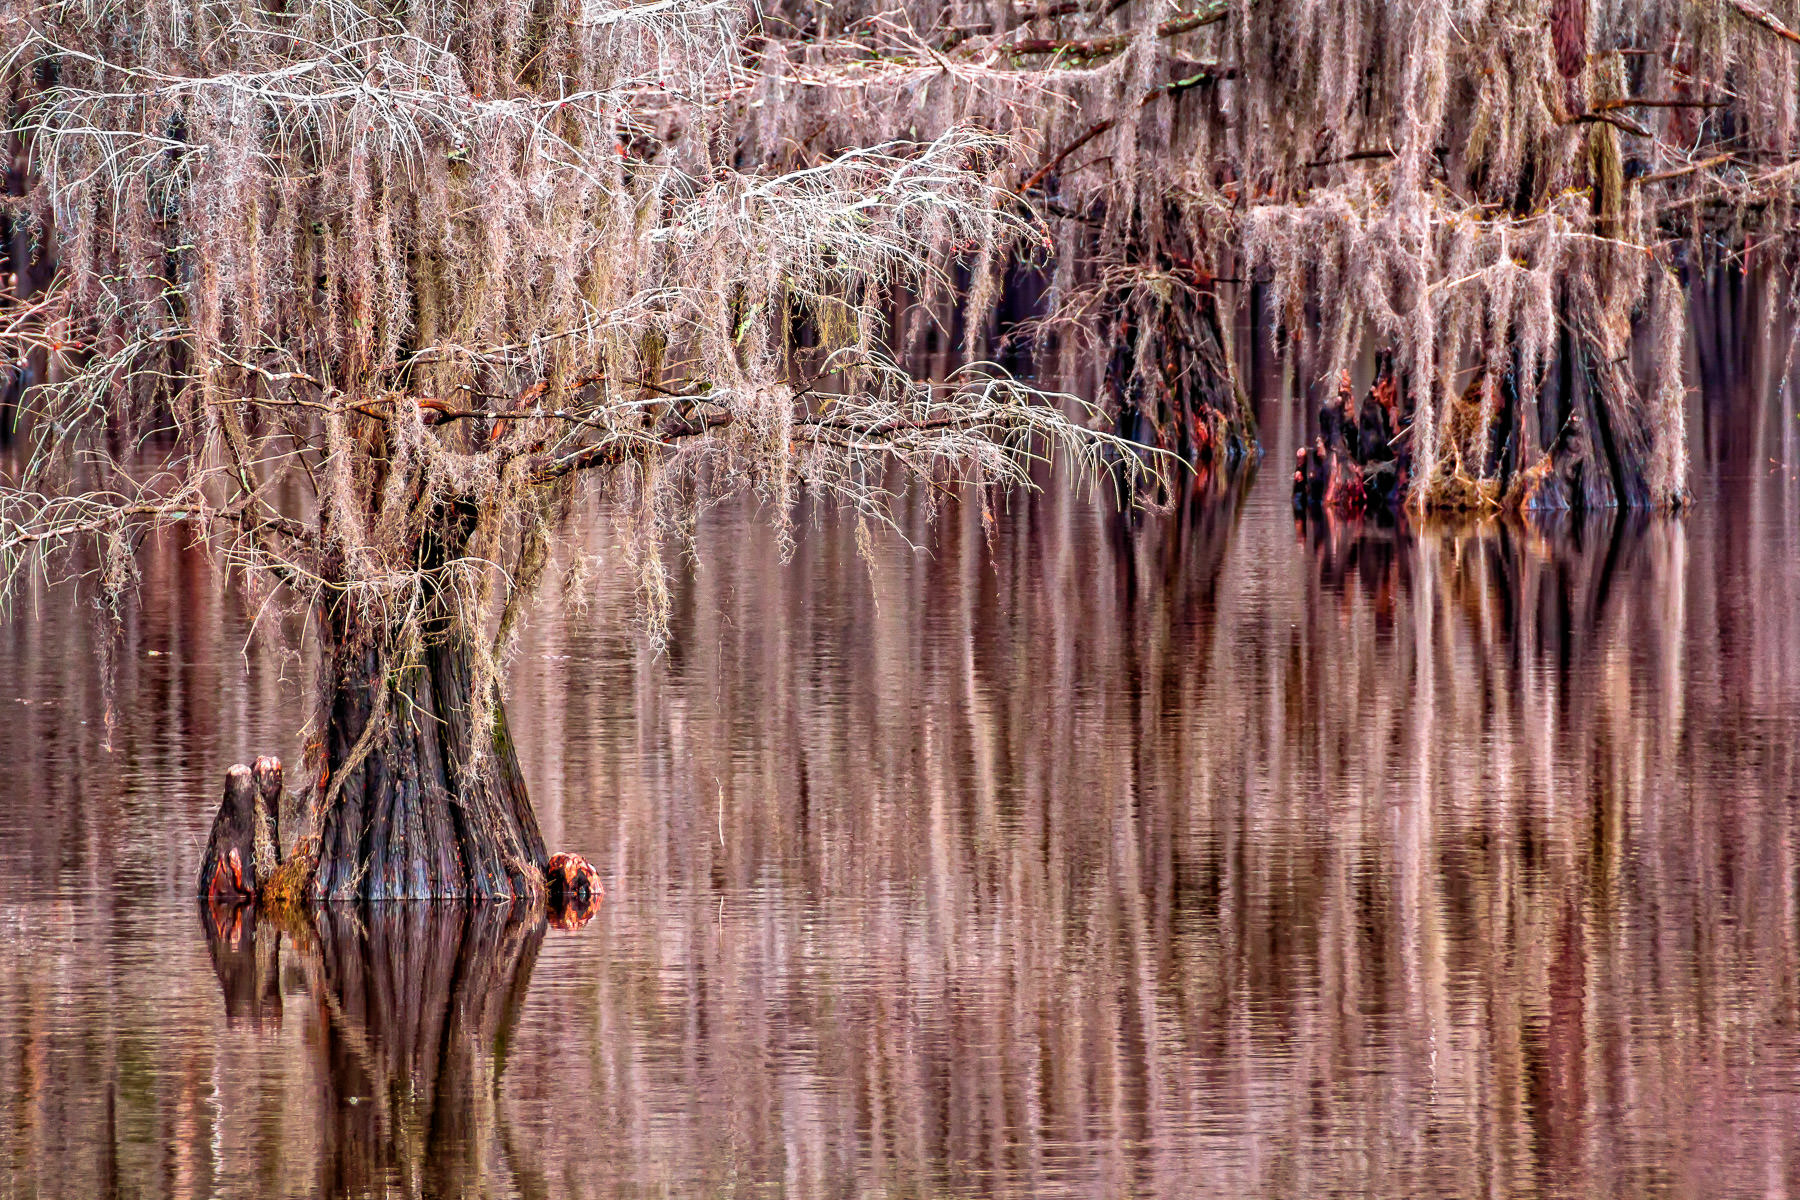 Ethereal cypress trees rise from the water at East Texas' Caddo Lake.